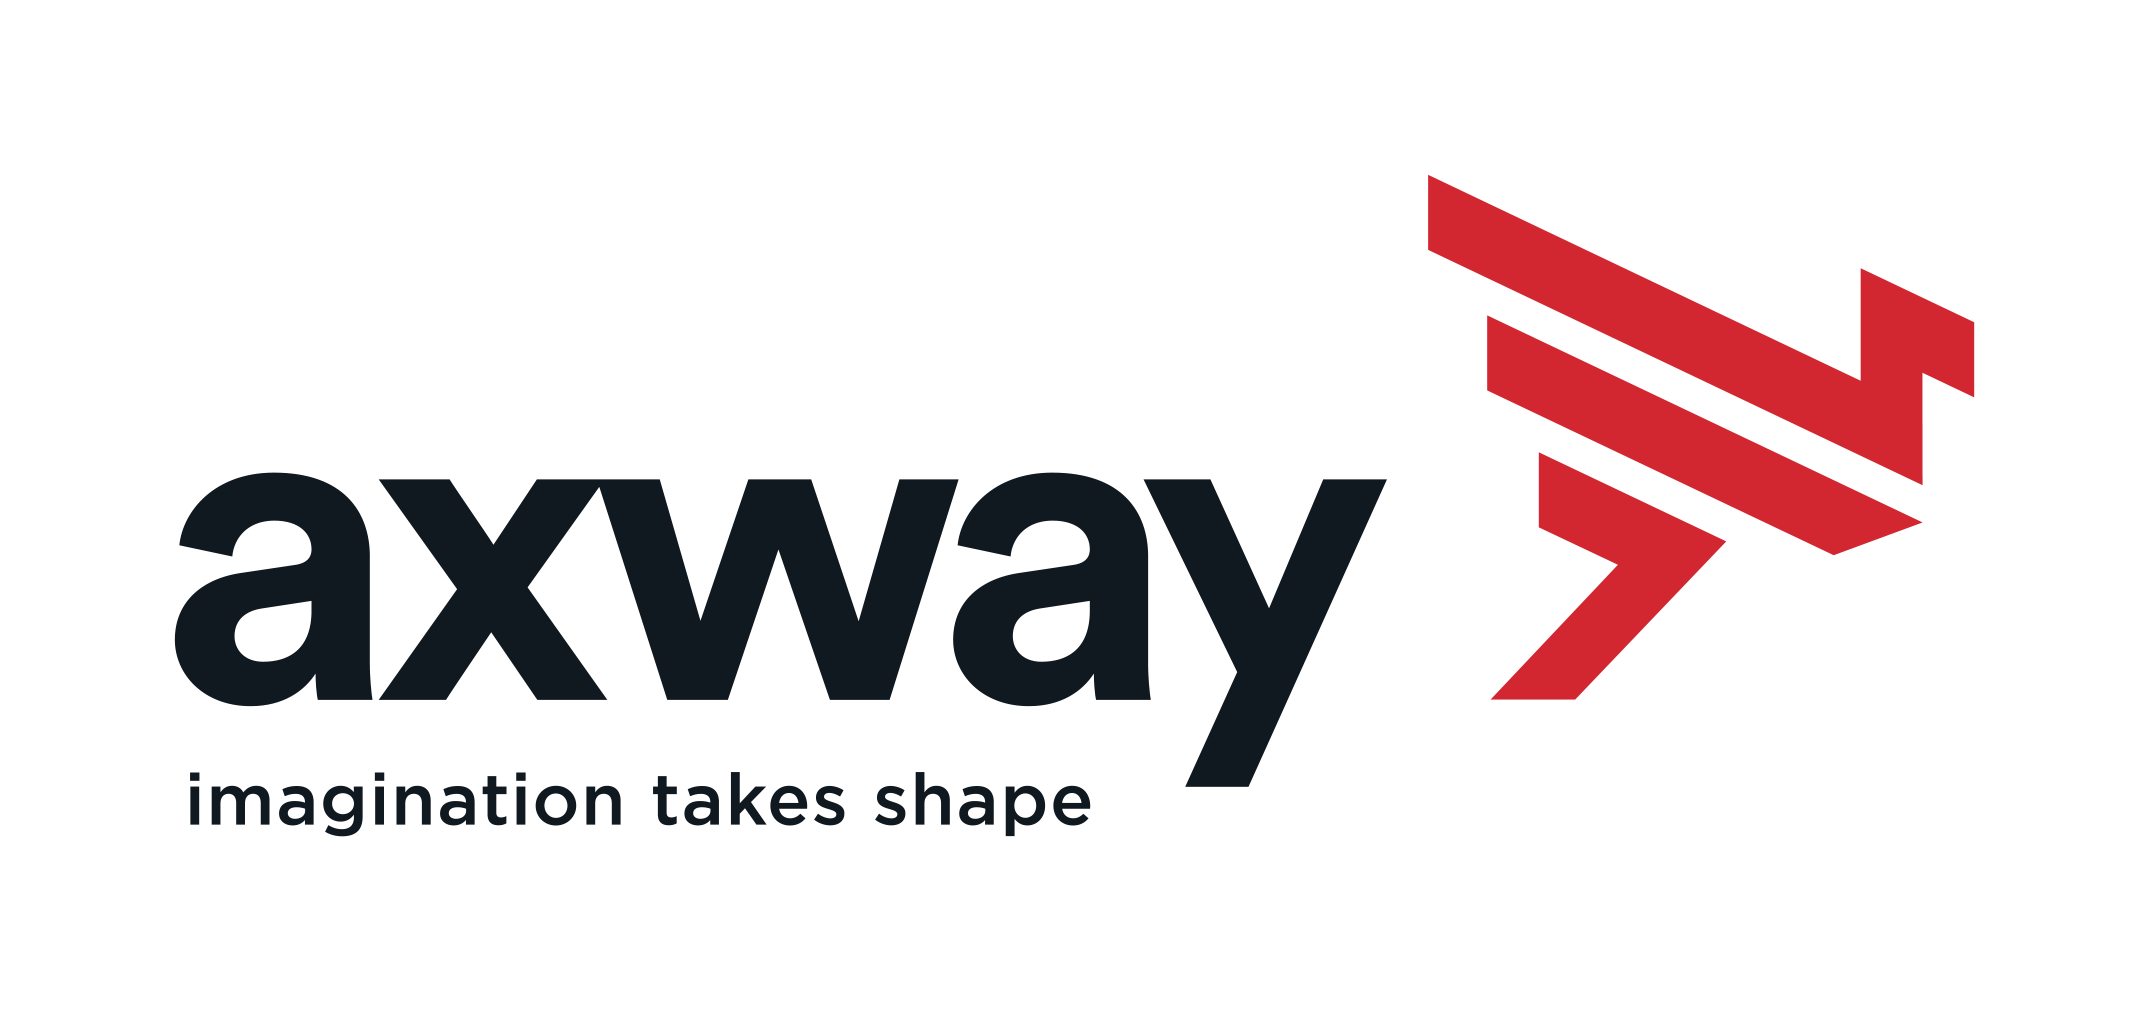 Tech a way   Axway Picture